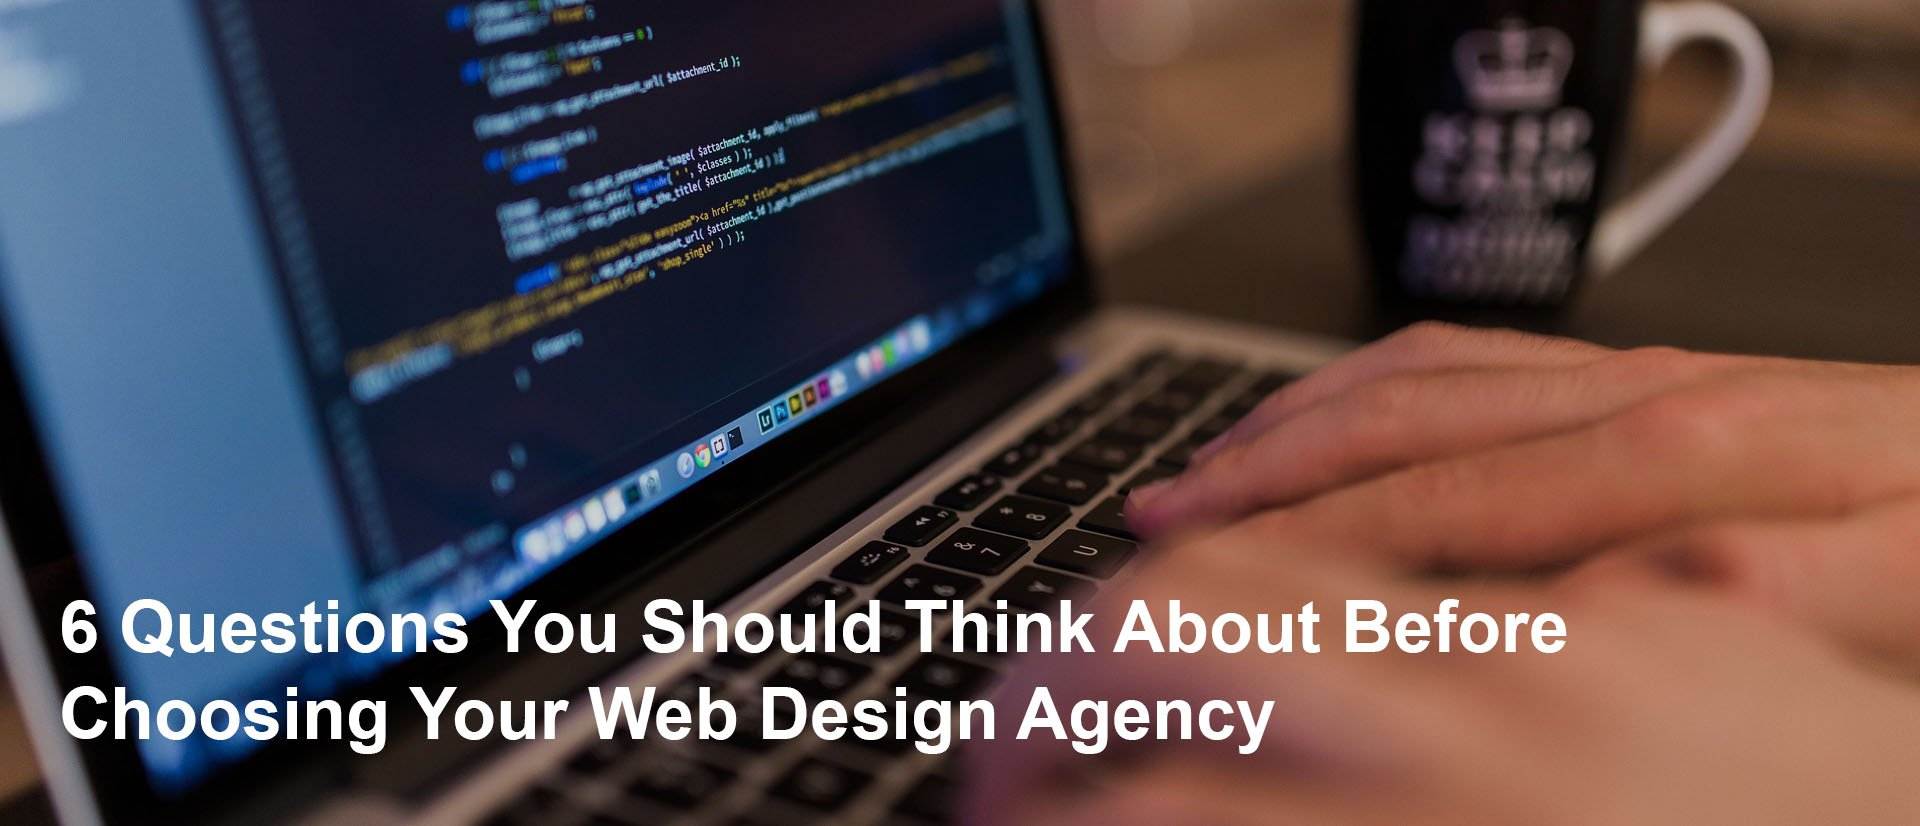 6 Questions You Should Think About Before Choosing Your Web Design Agency